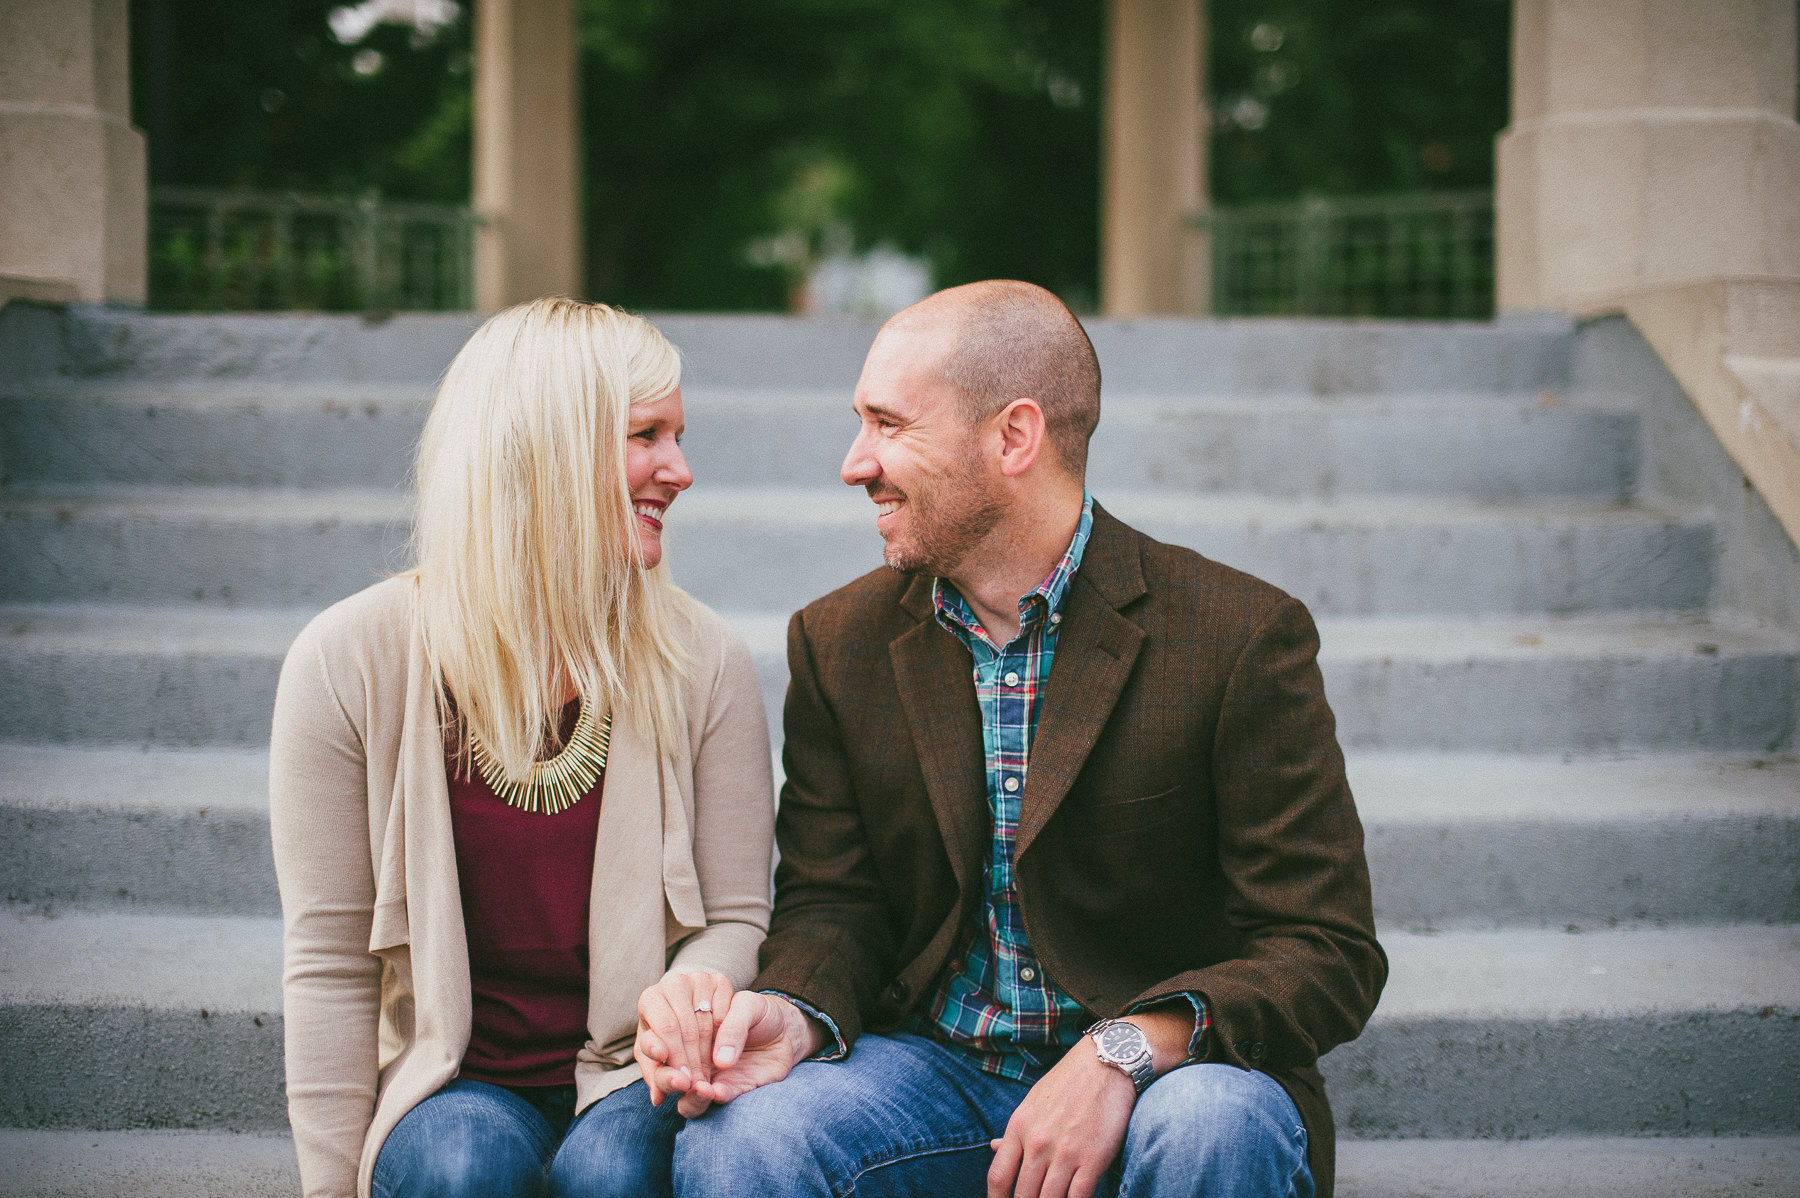 breighton-and-basette-photography-copyrighted-image-blog-emily-and-dave-engagement-001.jpg